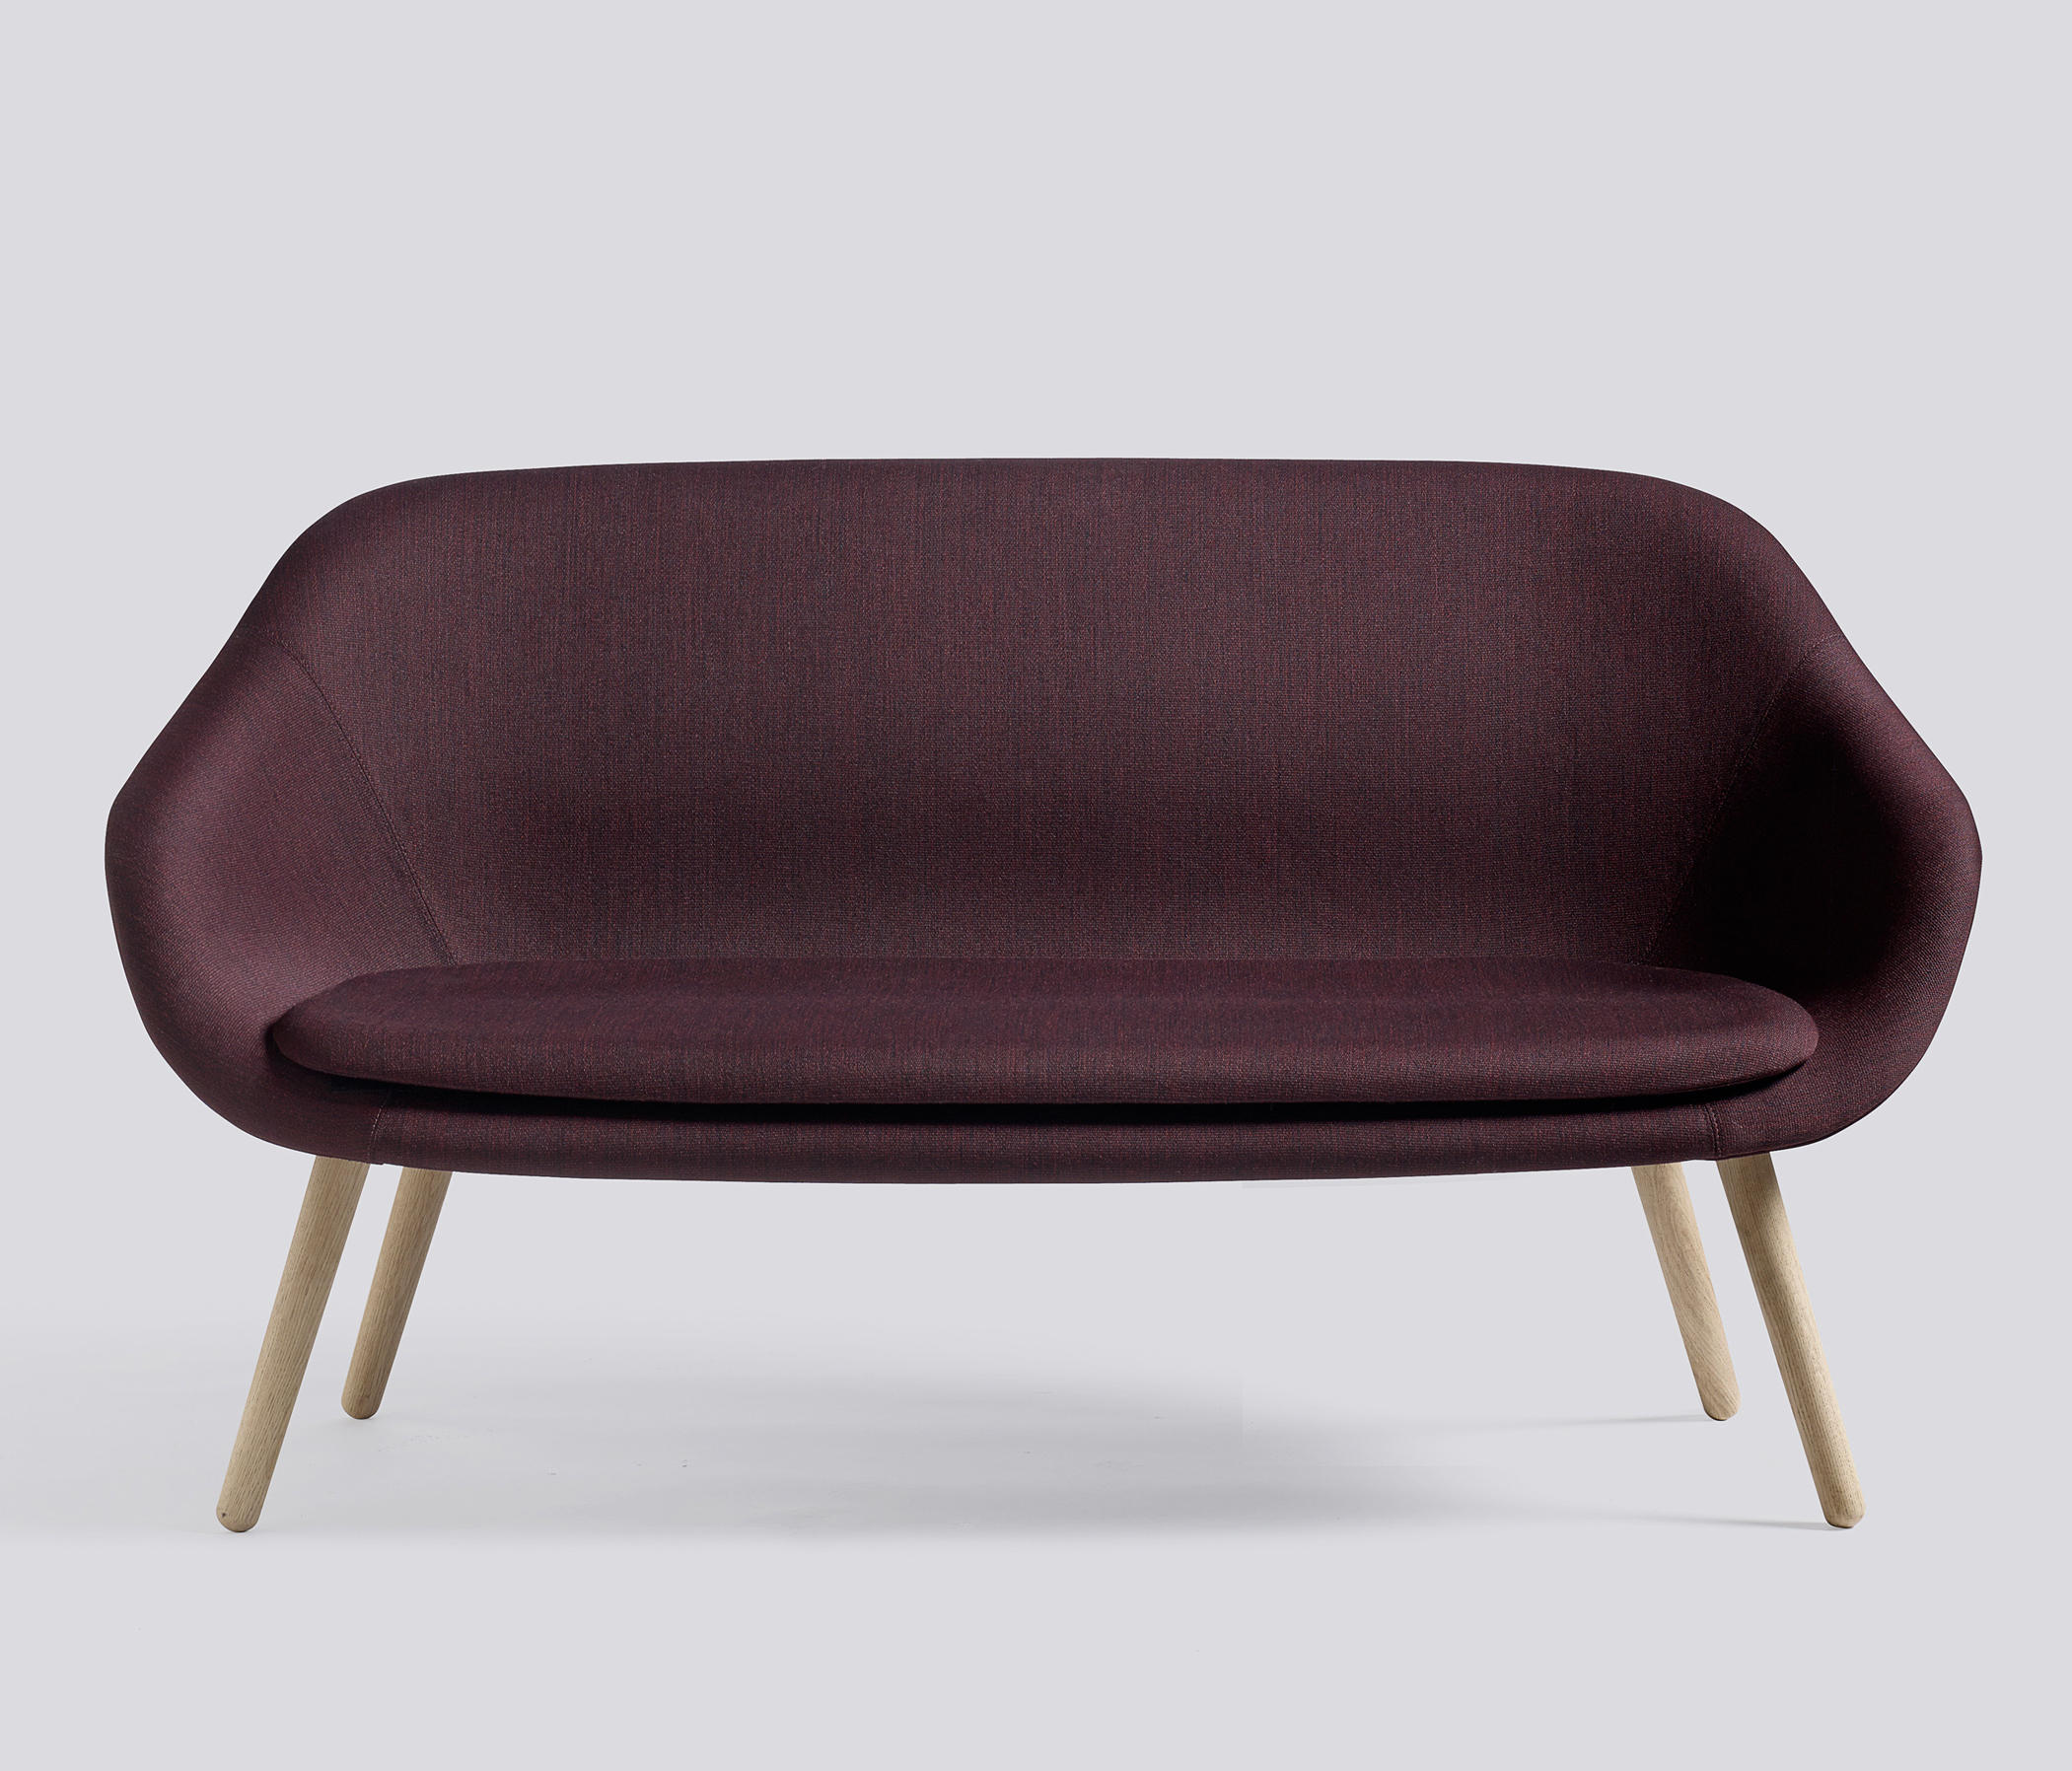 ABOUT A LOUNGE SOFA FOR WELL Lounge sofas from Hay